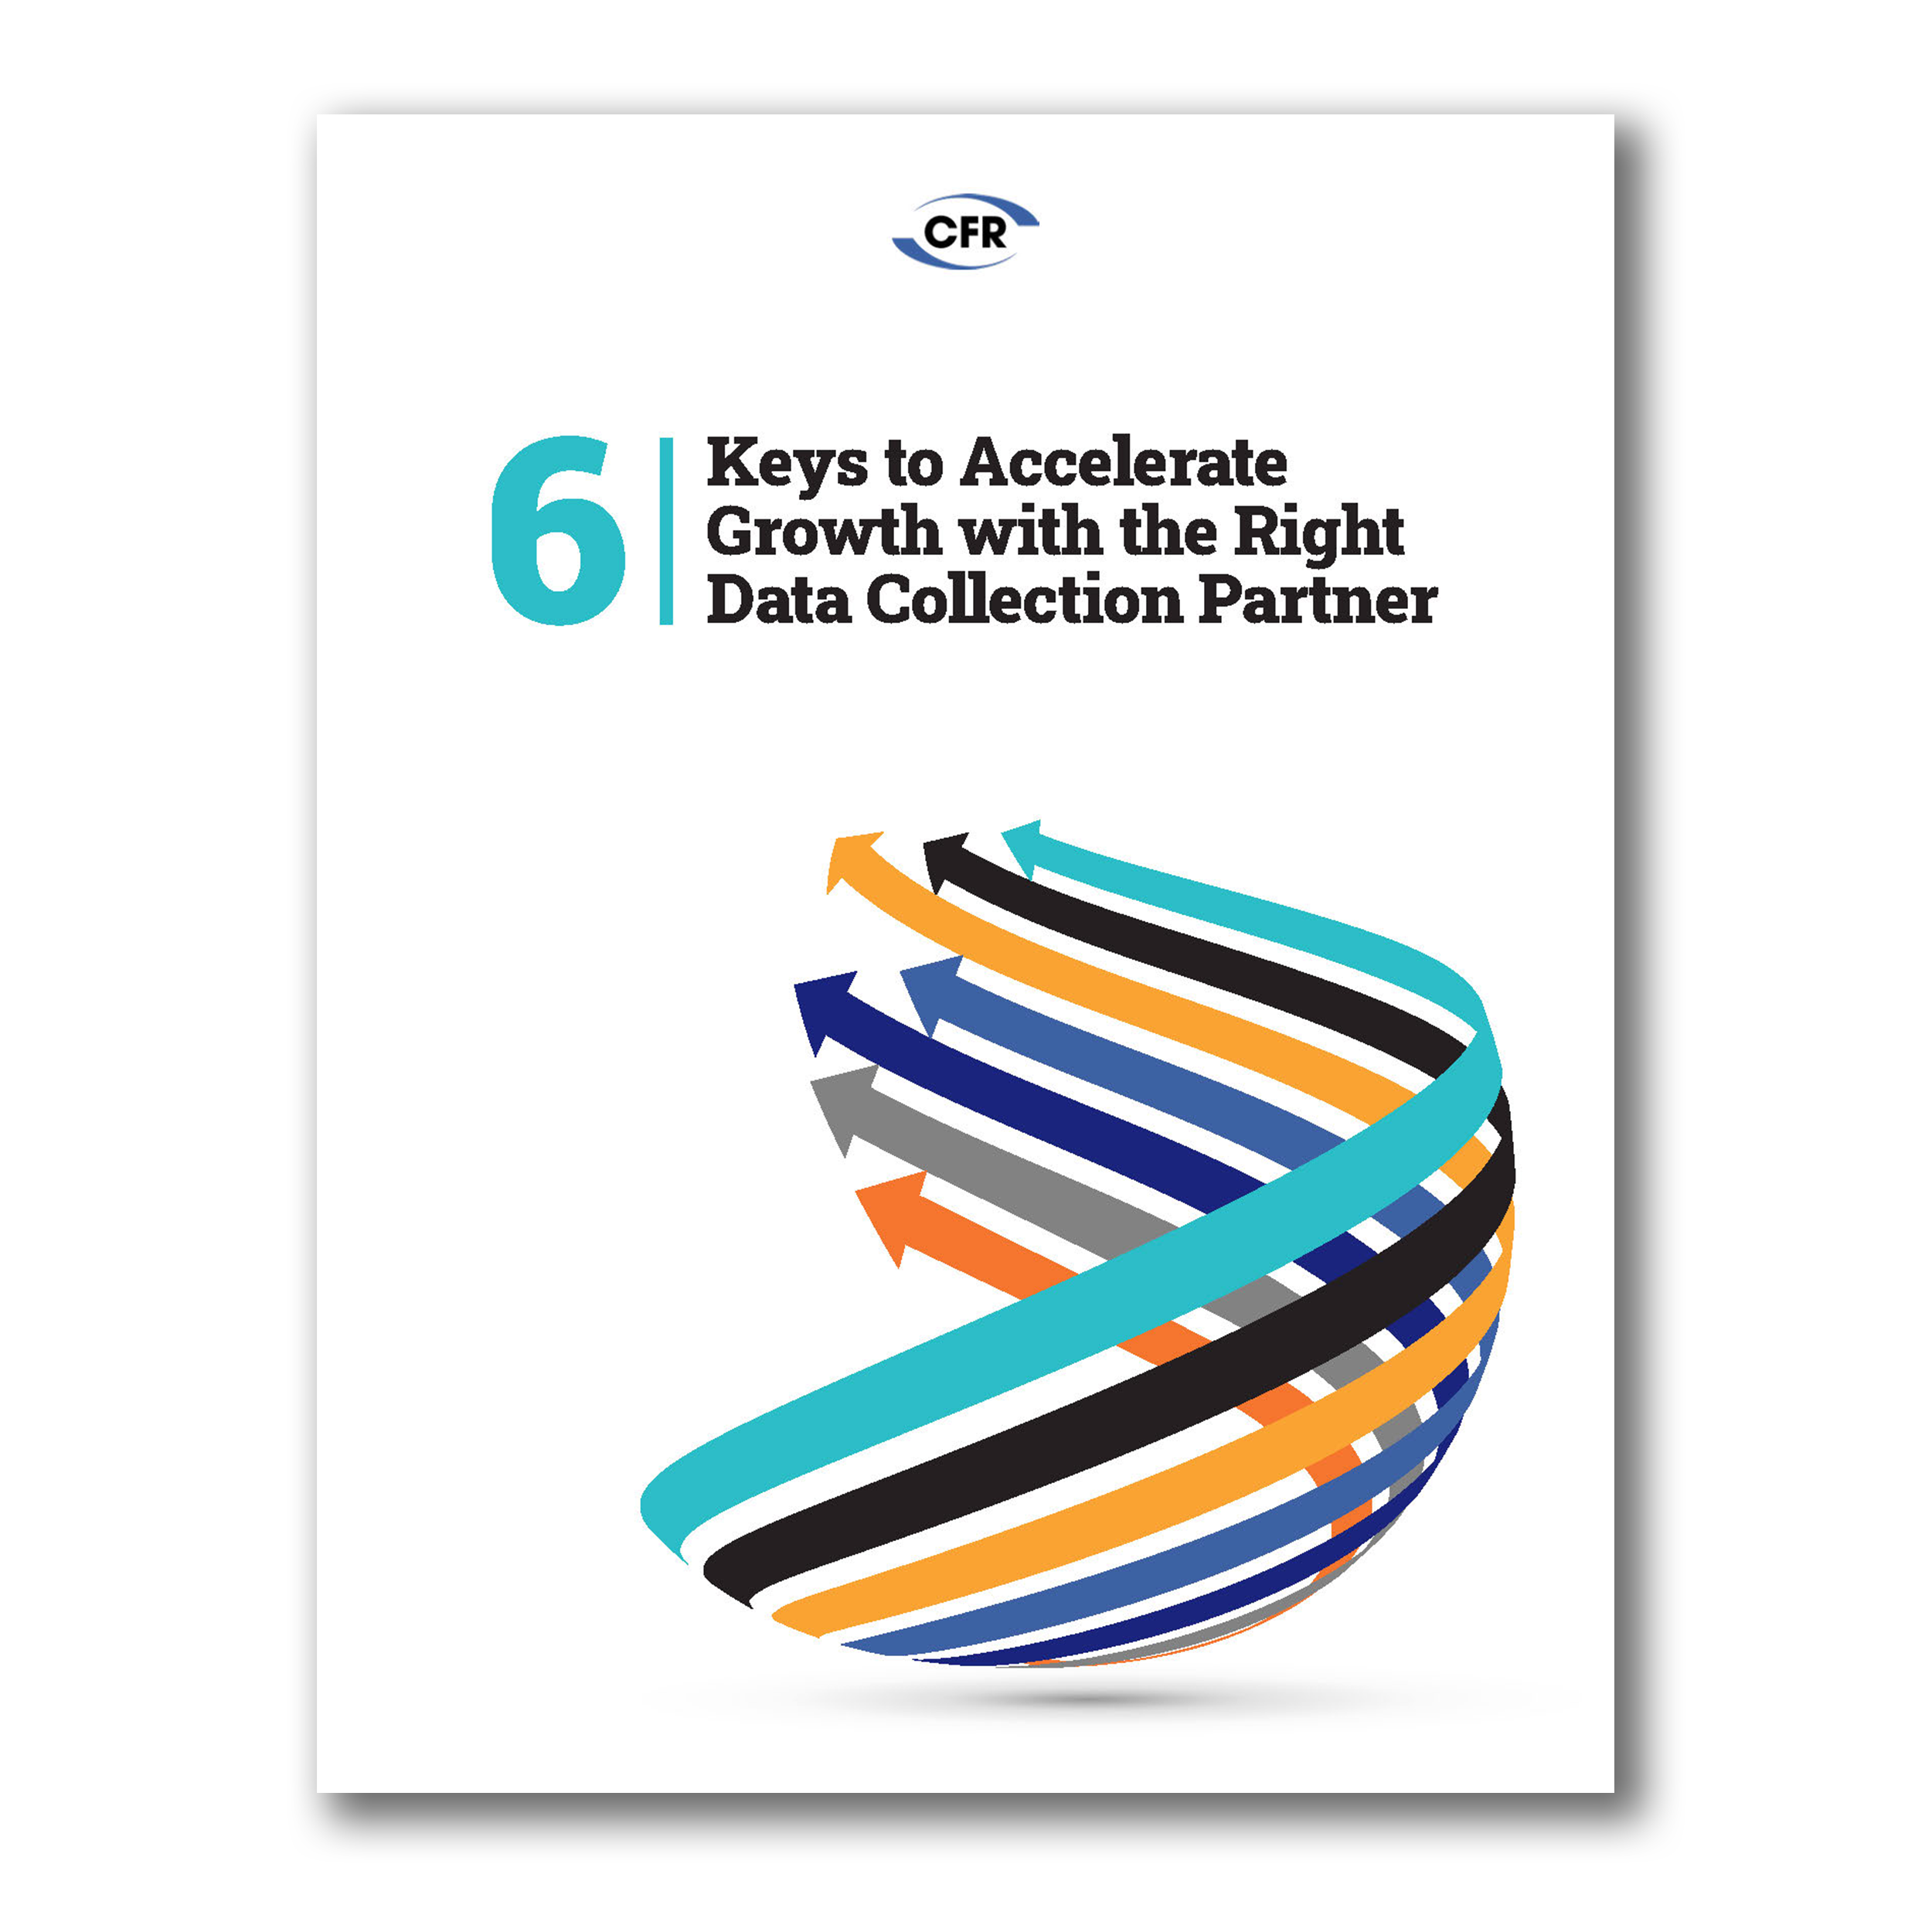 6 Keys to Accelerate Growth with the Right Data Collection Partner